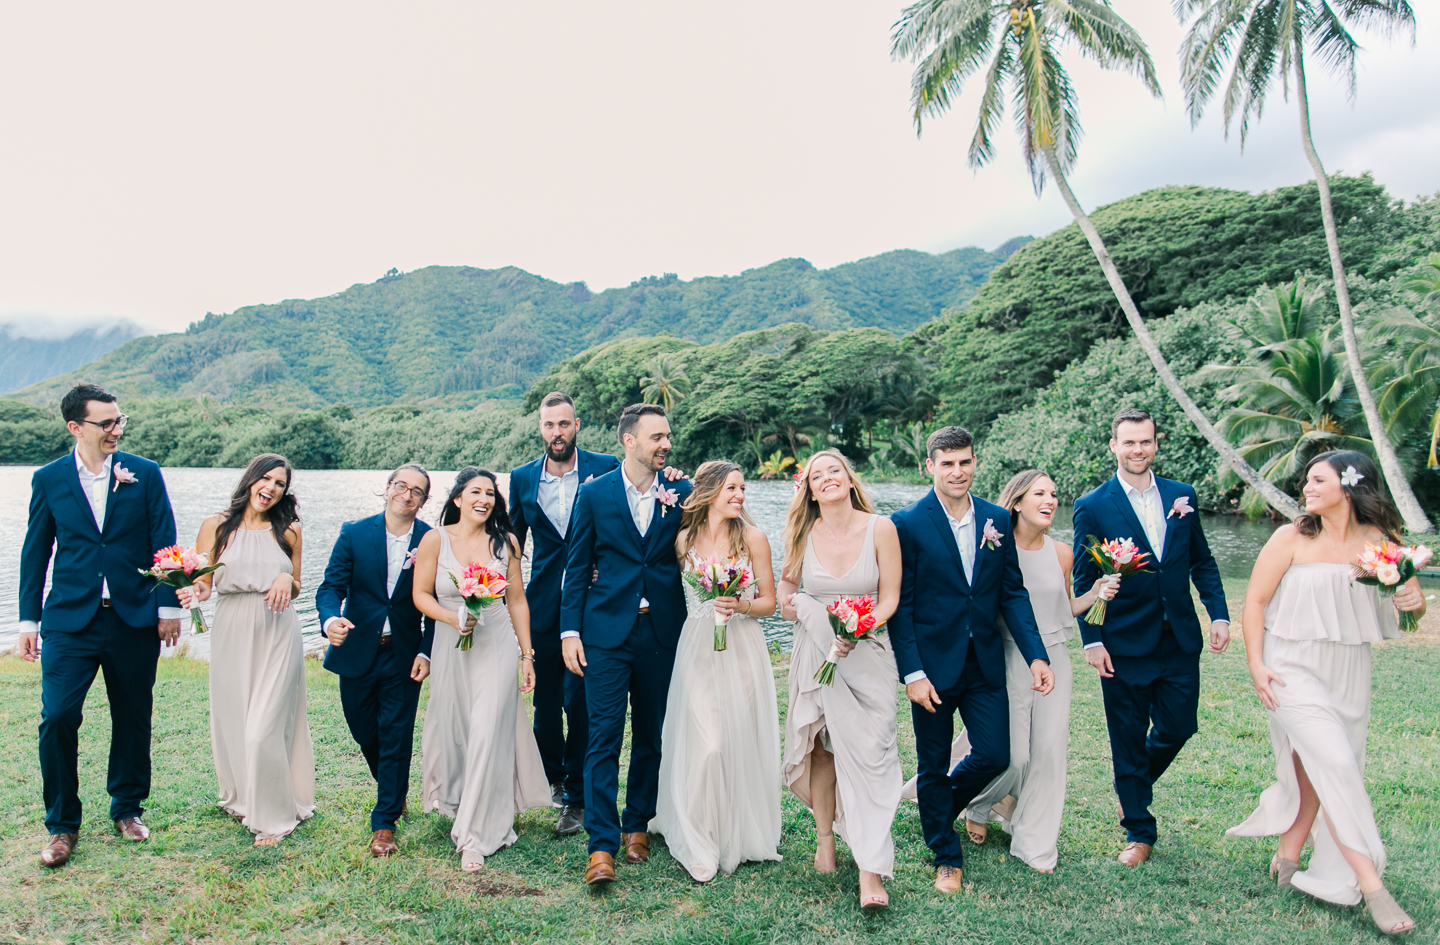 Fine_Art_Wedding_Hawaii_Kualoa_Ranch_Photographer.jpg